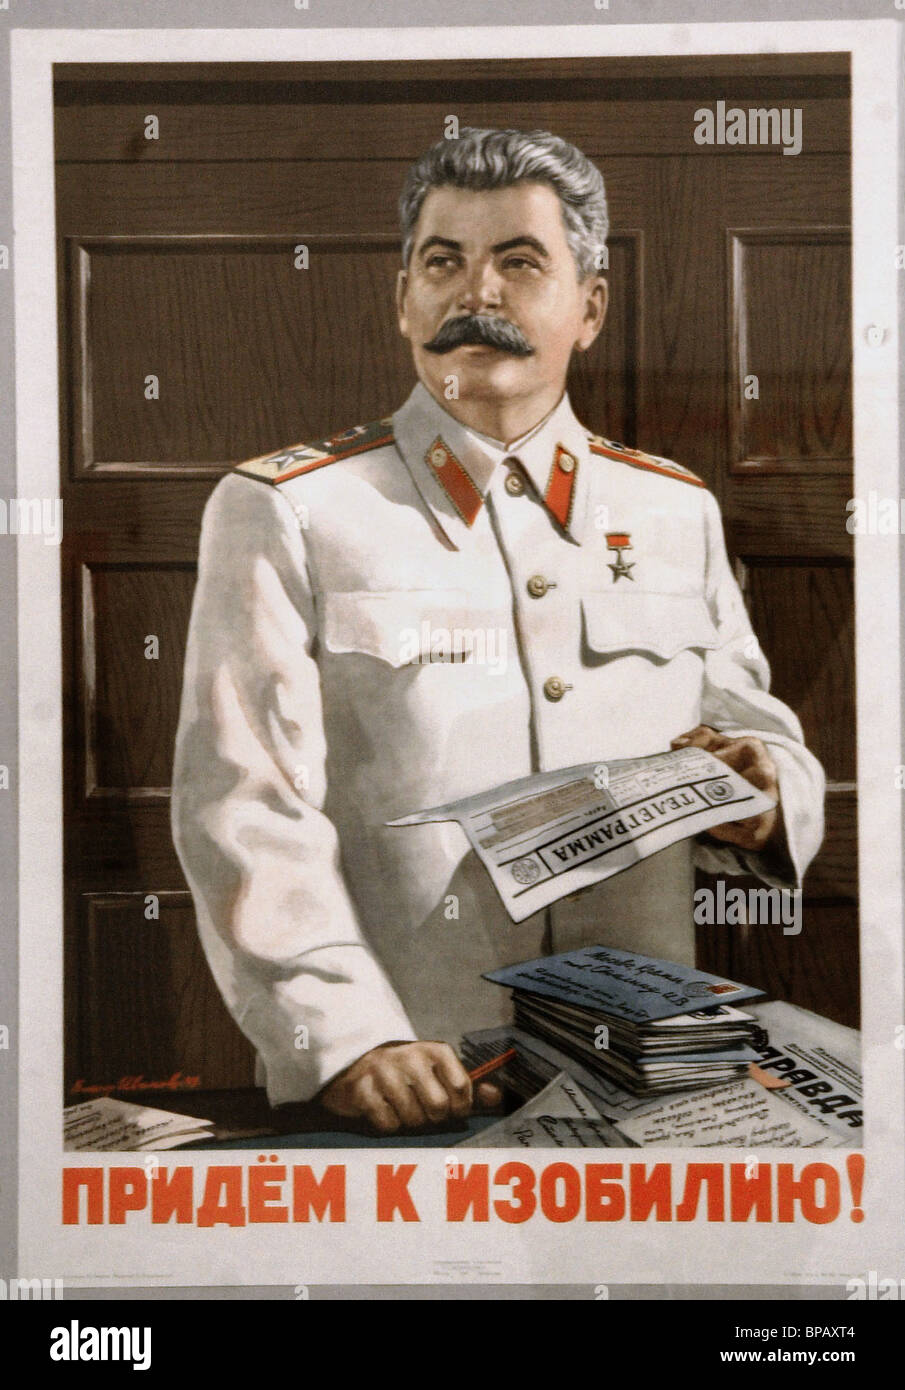 Exhibition of political posters, timed to the 100-year anniversary of ITAR-TASS, opens in St. Petersburg - Stock Image